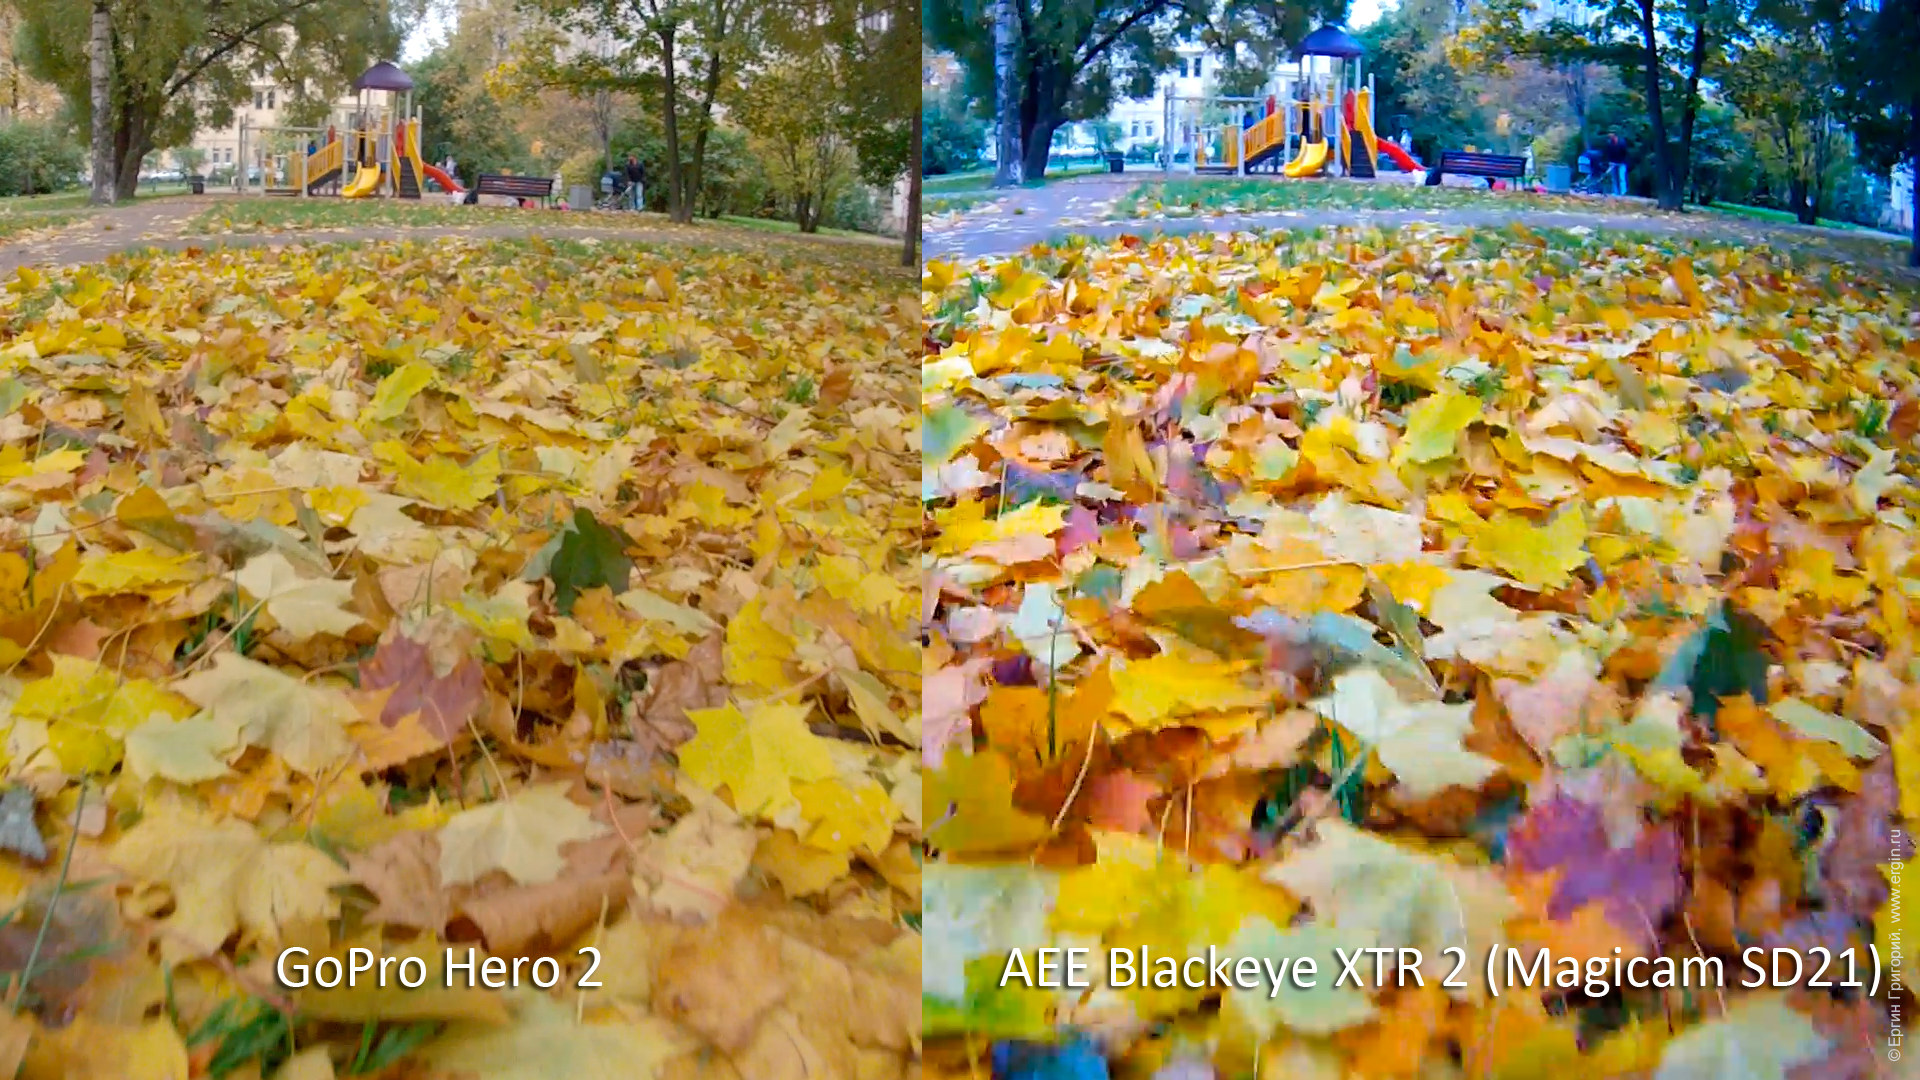 AEE Blackeye XTR 2 (AEE Magicam SD21) vs GoPro Hero 2: опавшие листья и синева